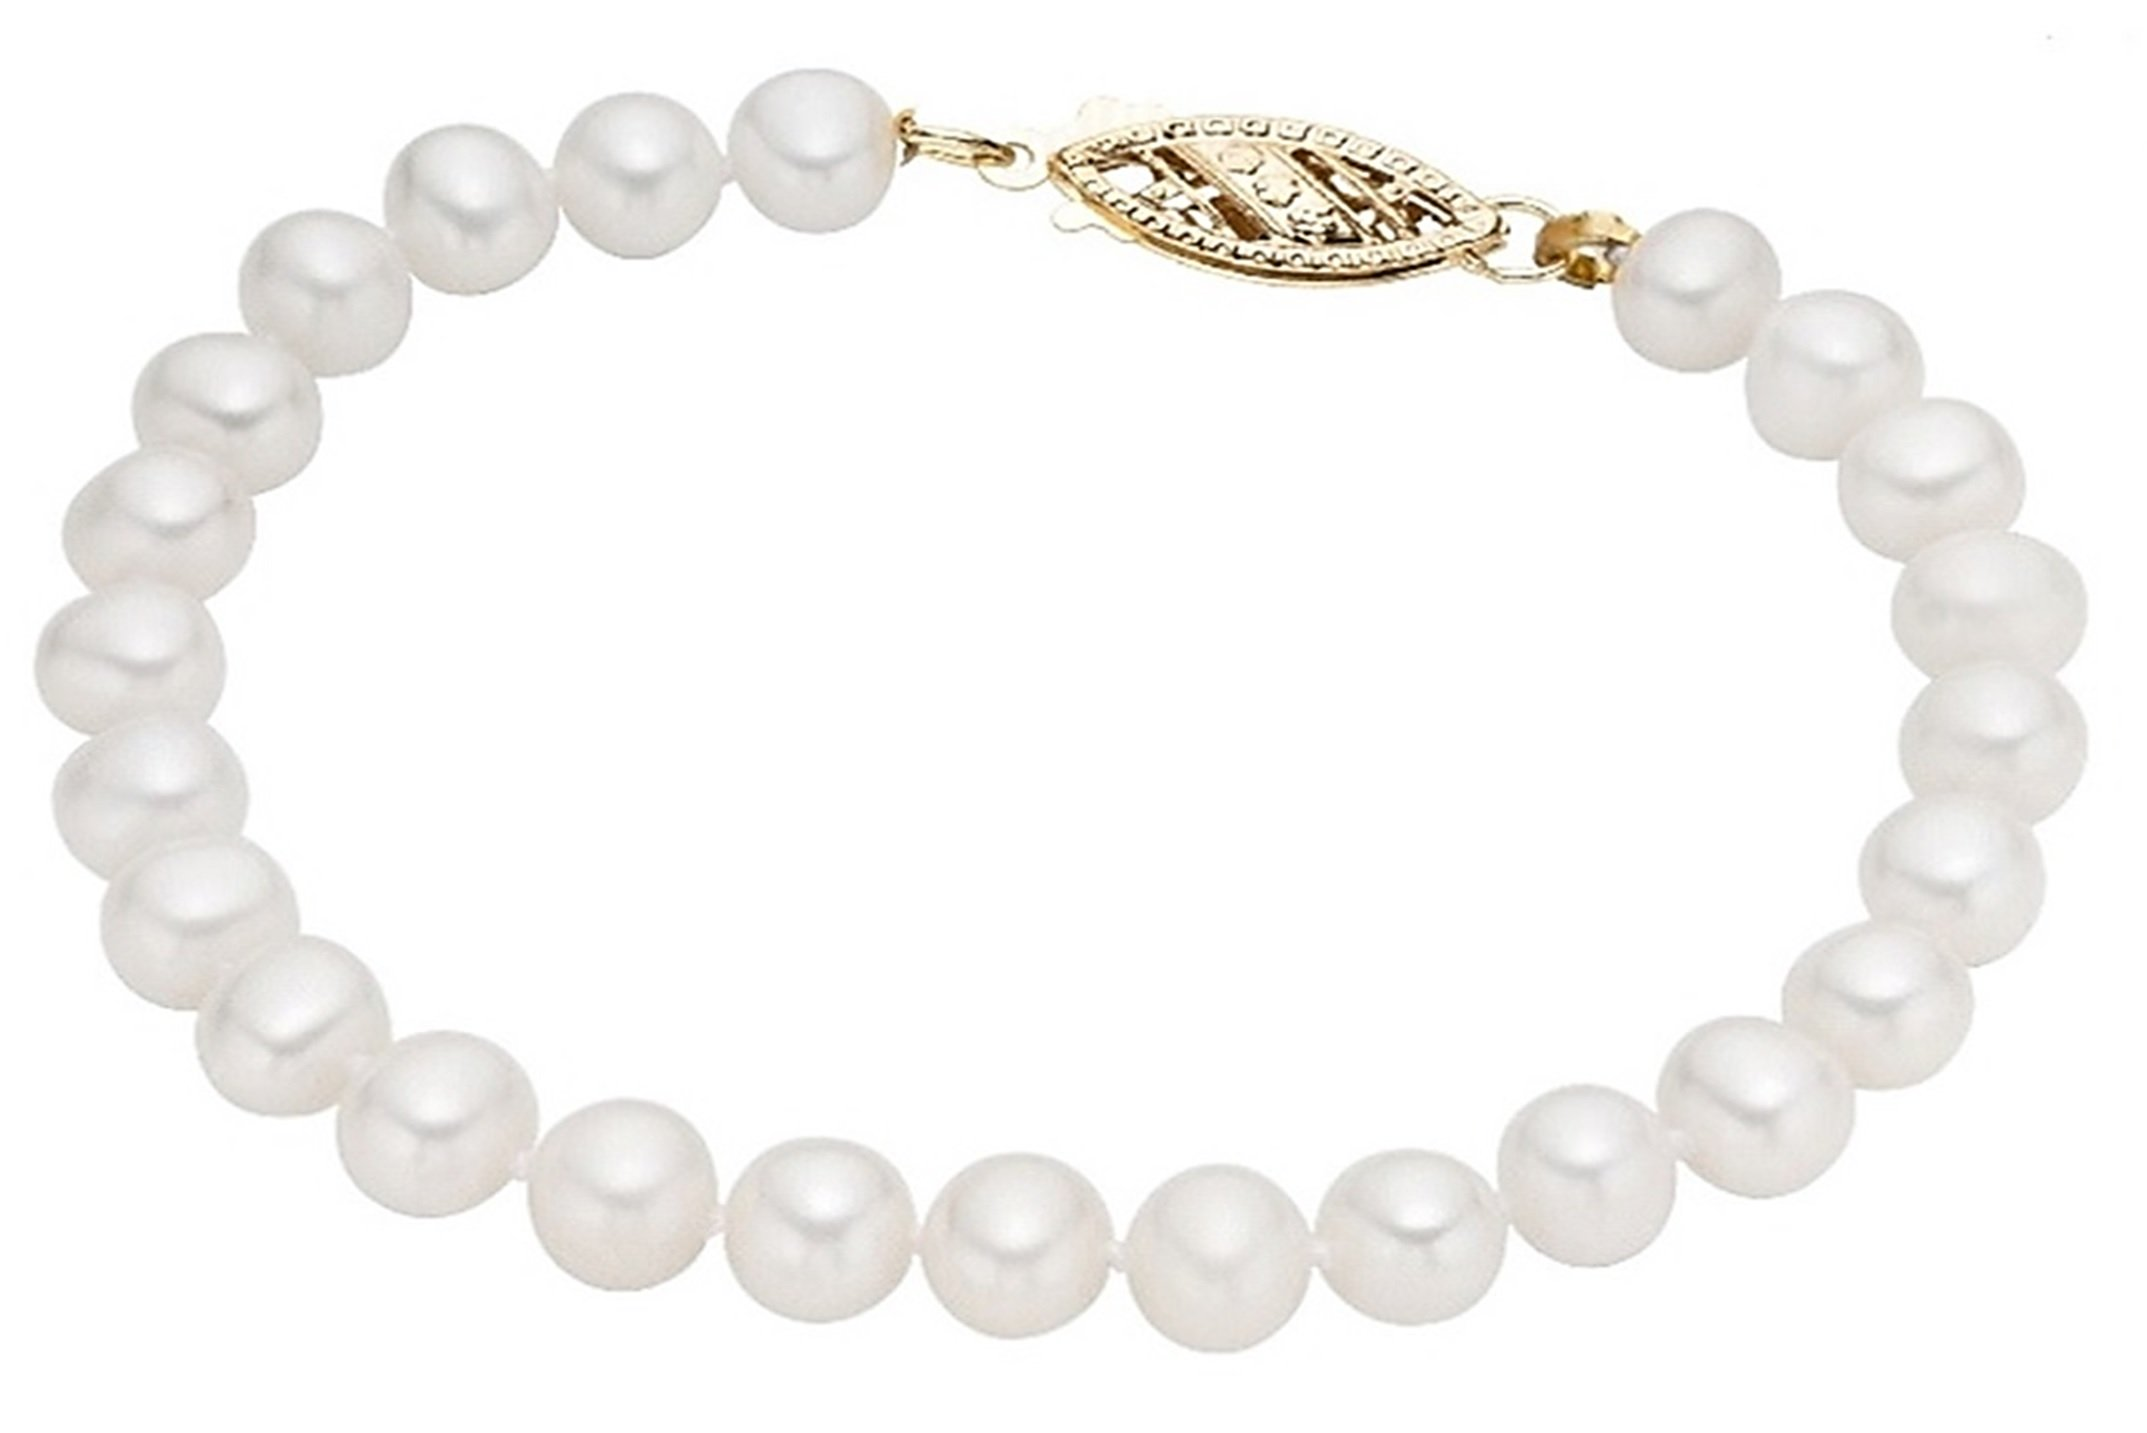 14k Yellow Gold 8.5-9mm Bridal Freshwater Cultured AA Quality Pearl Bracelet 7''